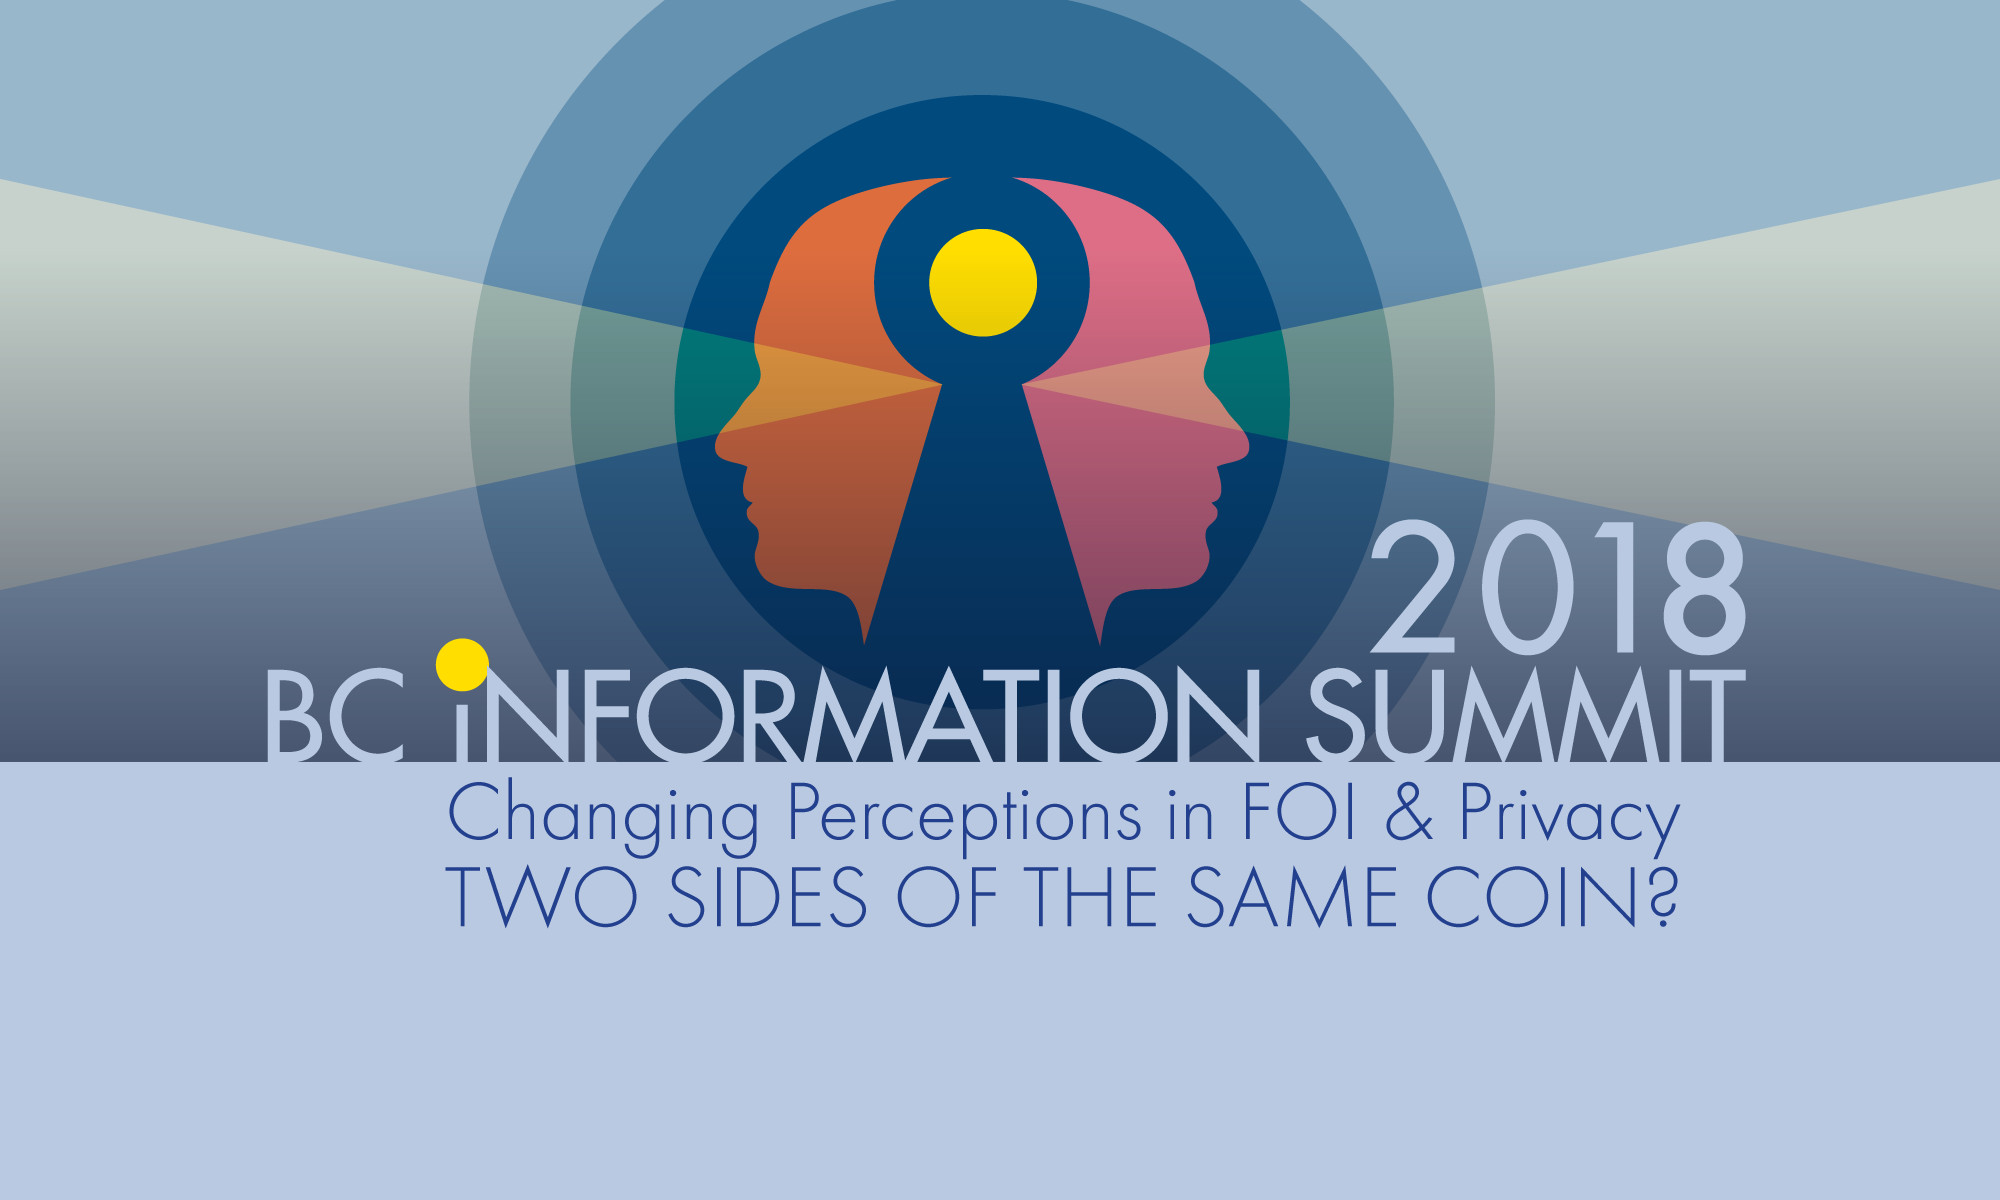 BC Information Summit